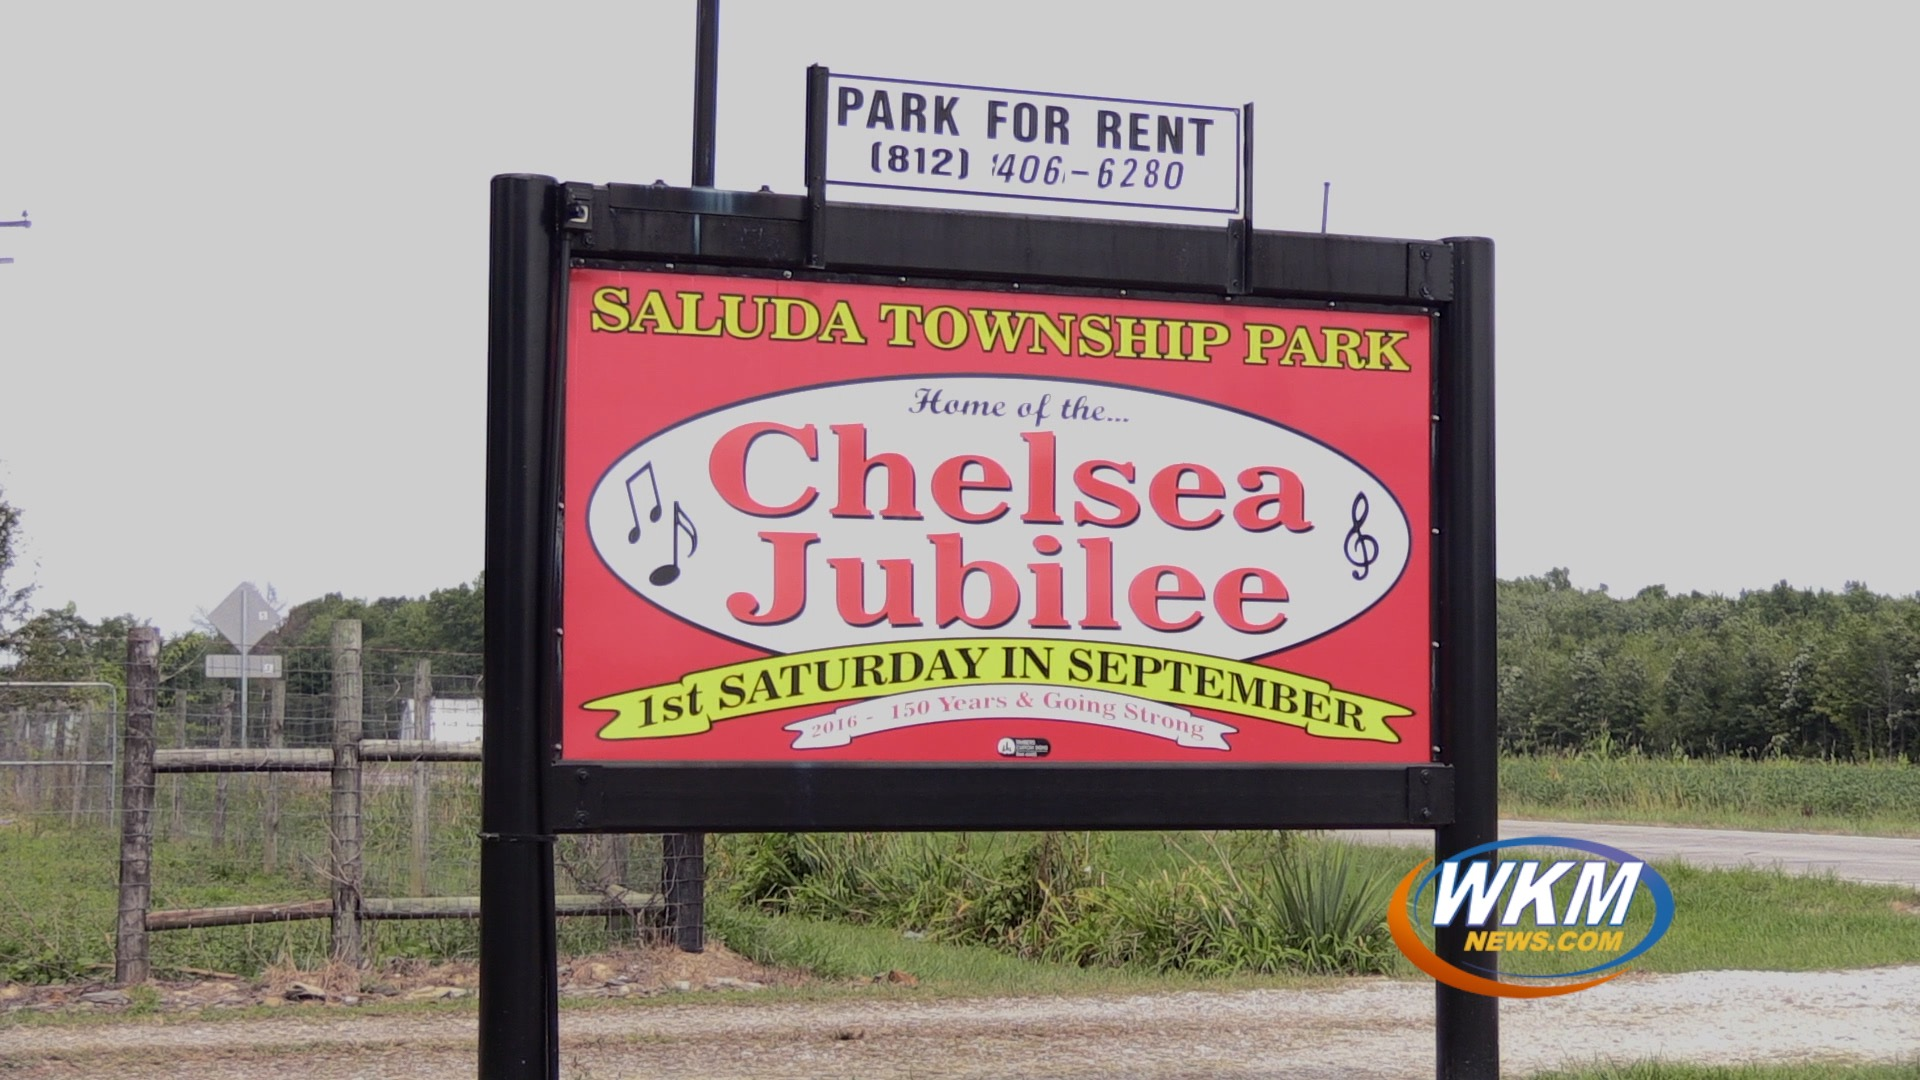 Indiana's Oldest Festival Celebrates Over 150 Years of Fun